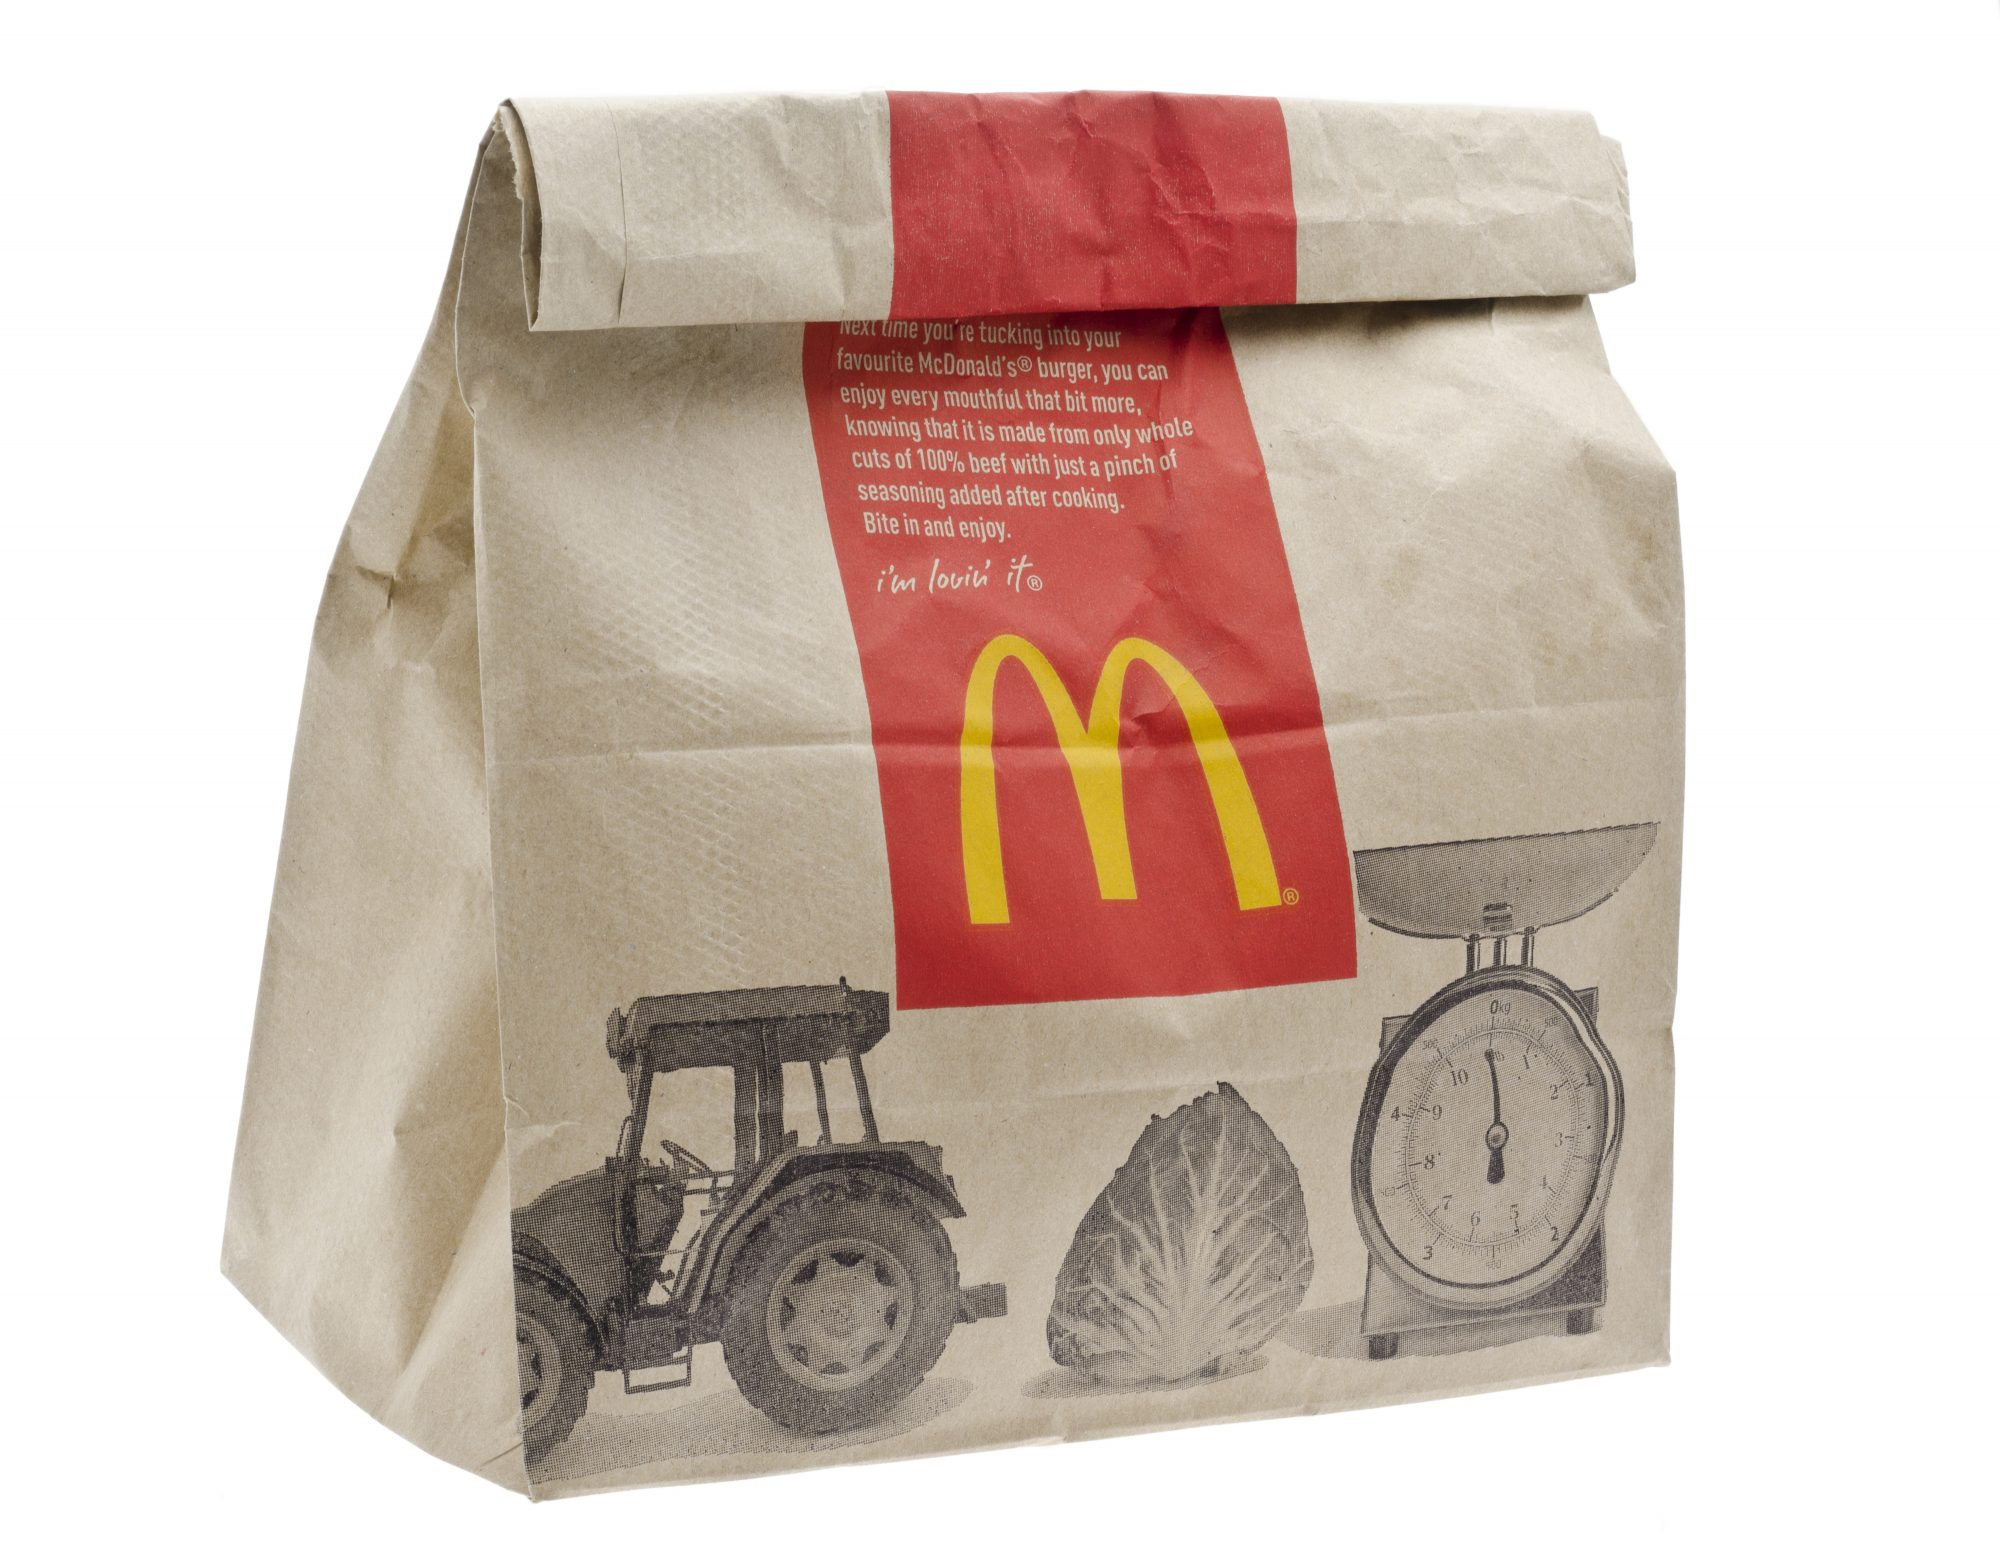 McDonald's Adds DoorDash as Delivery Partner